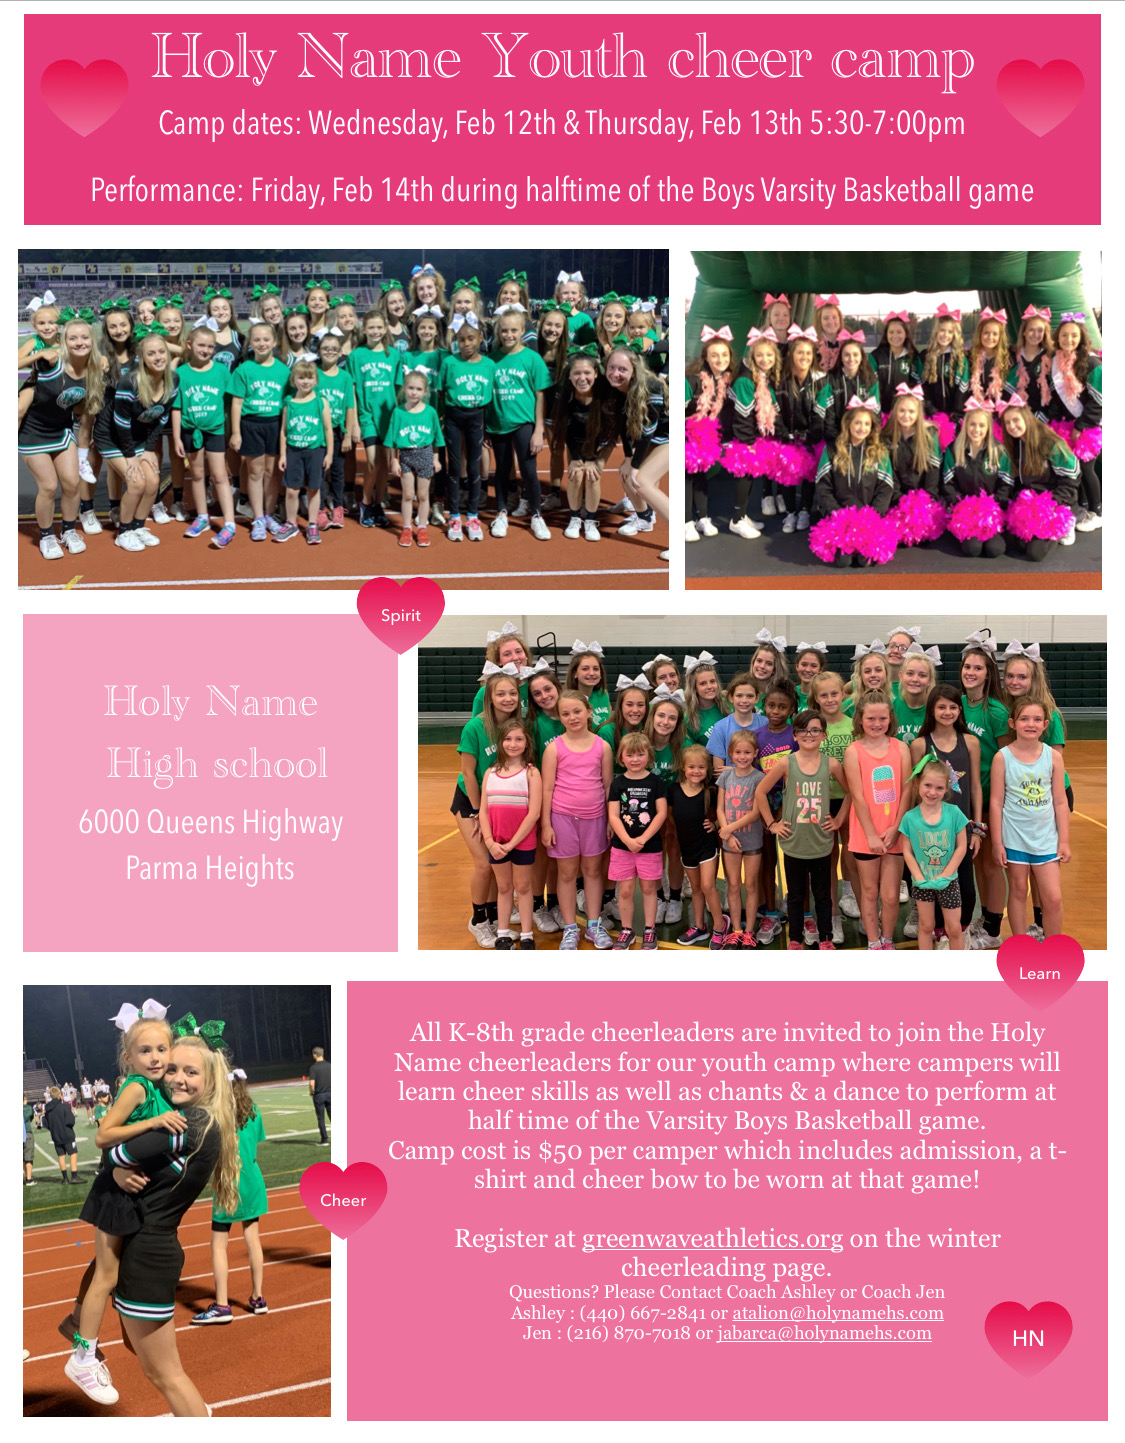 Holy Name Winter Youth Cheerleading Camp!